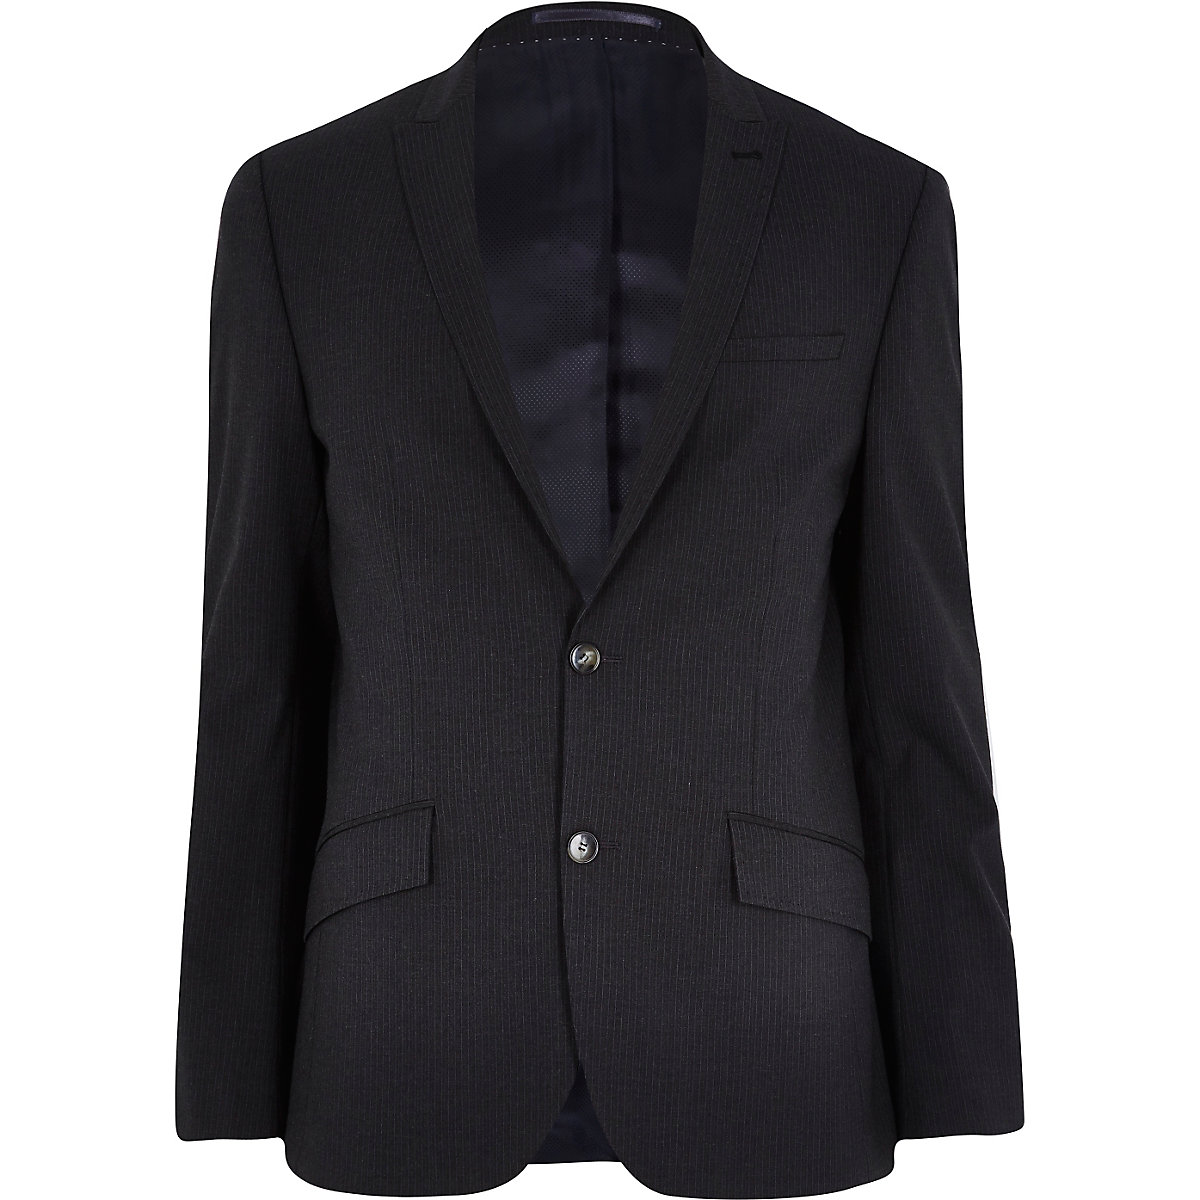 Grey pinstripe slim suit jacket